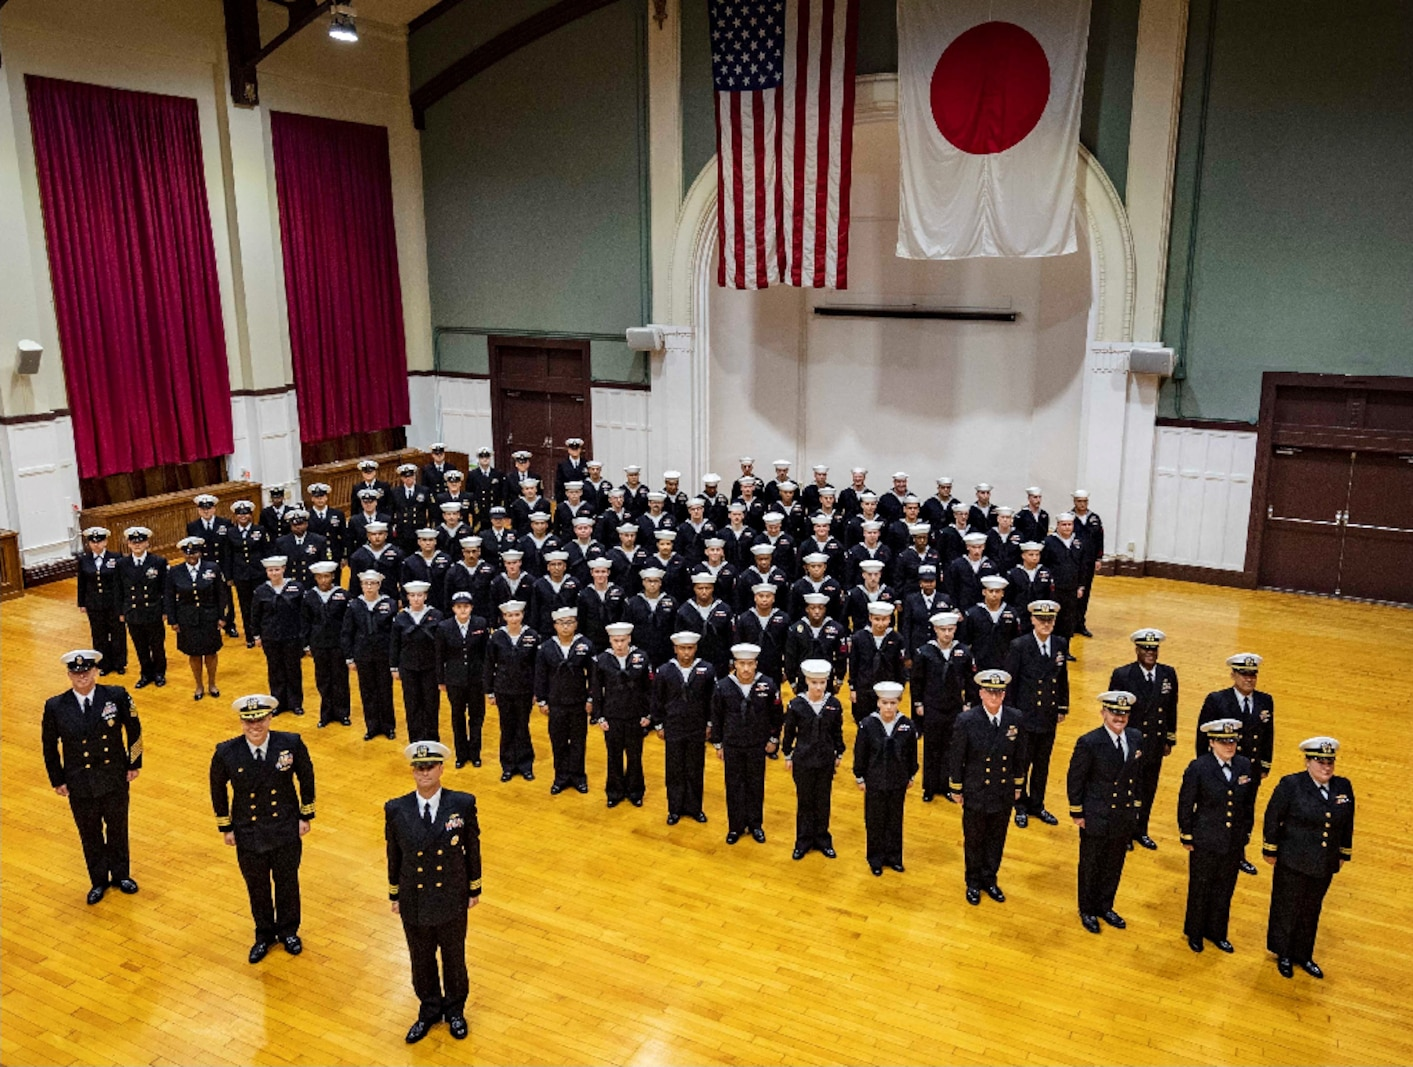 Sailors of U.S. Navy Information Operations Command (NIOC) located in Yoosuka, Japan, stand in formation.